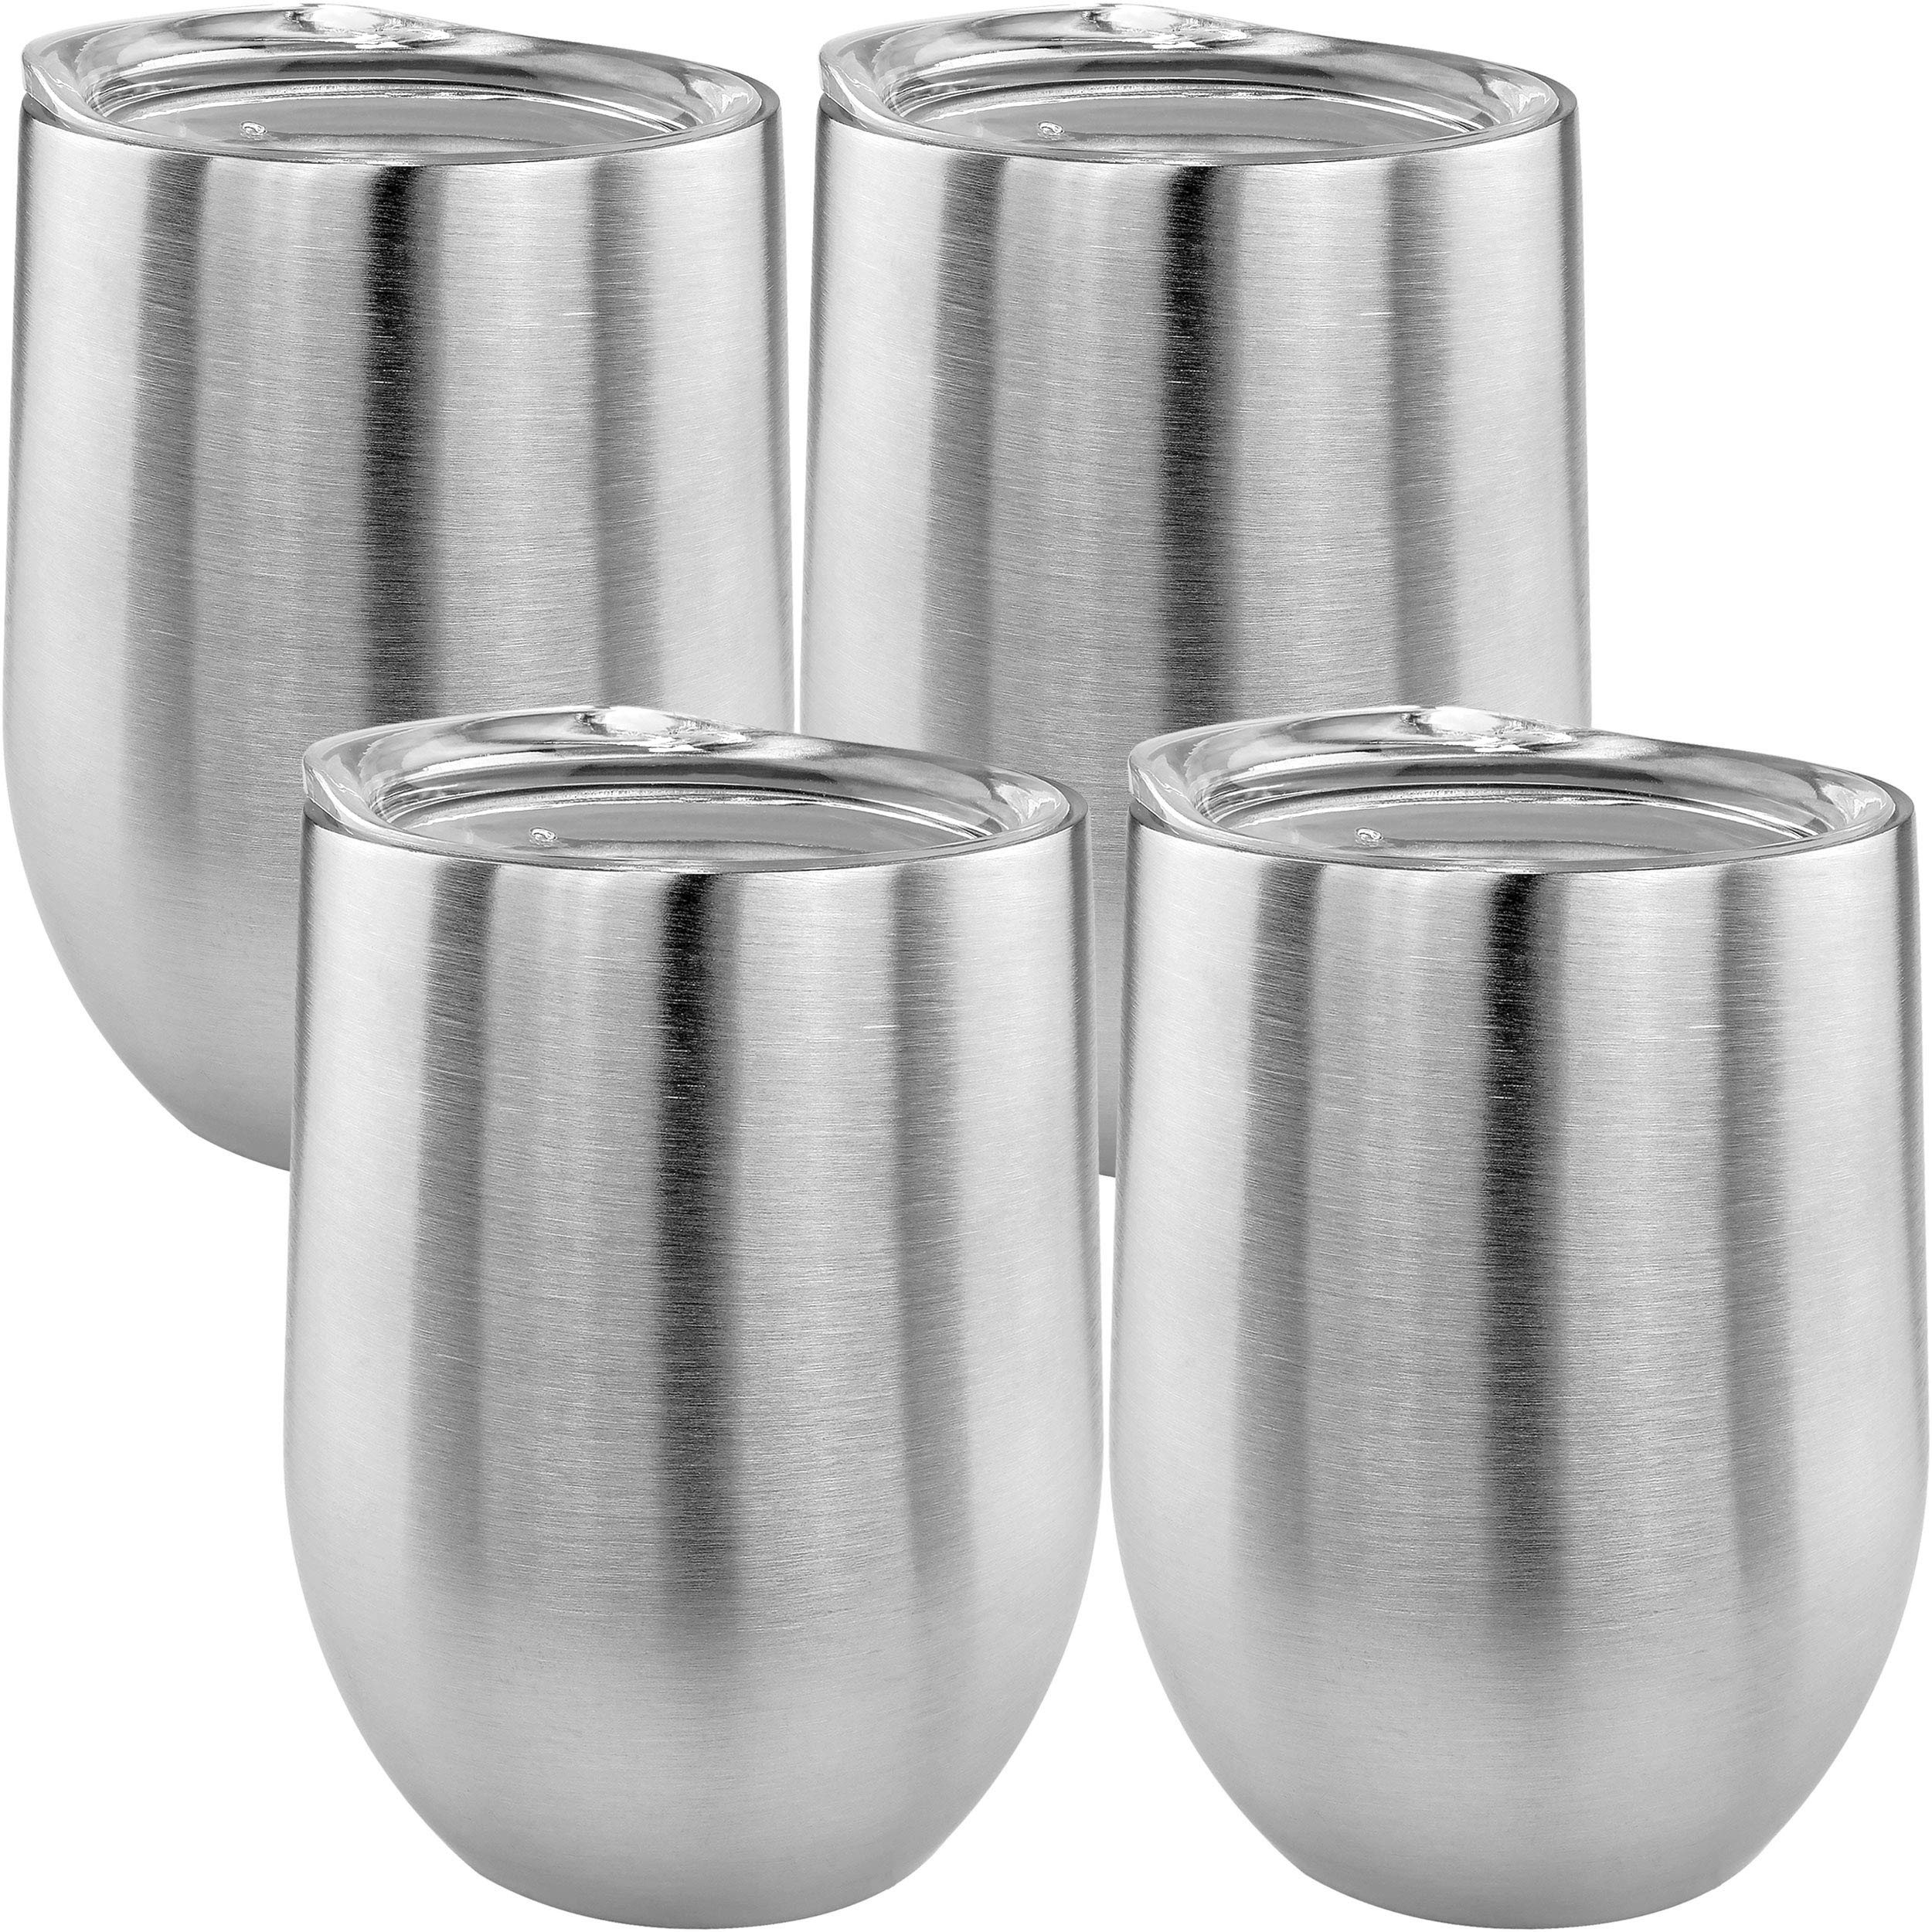 Southern Homewares SH-10212-S2-2PK Double Wall Stainless Steel Stemless Wine Glass W/ Lids 14oz (Set of 4), Silver